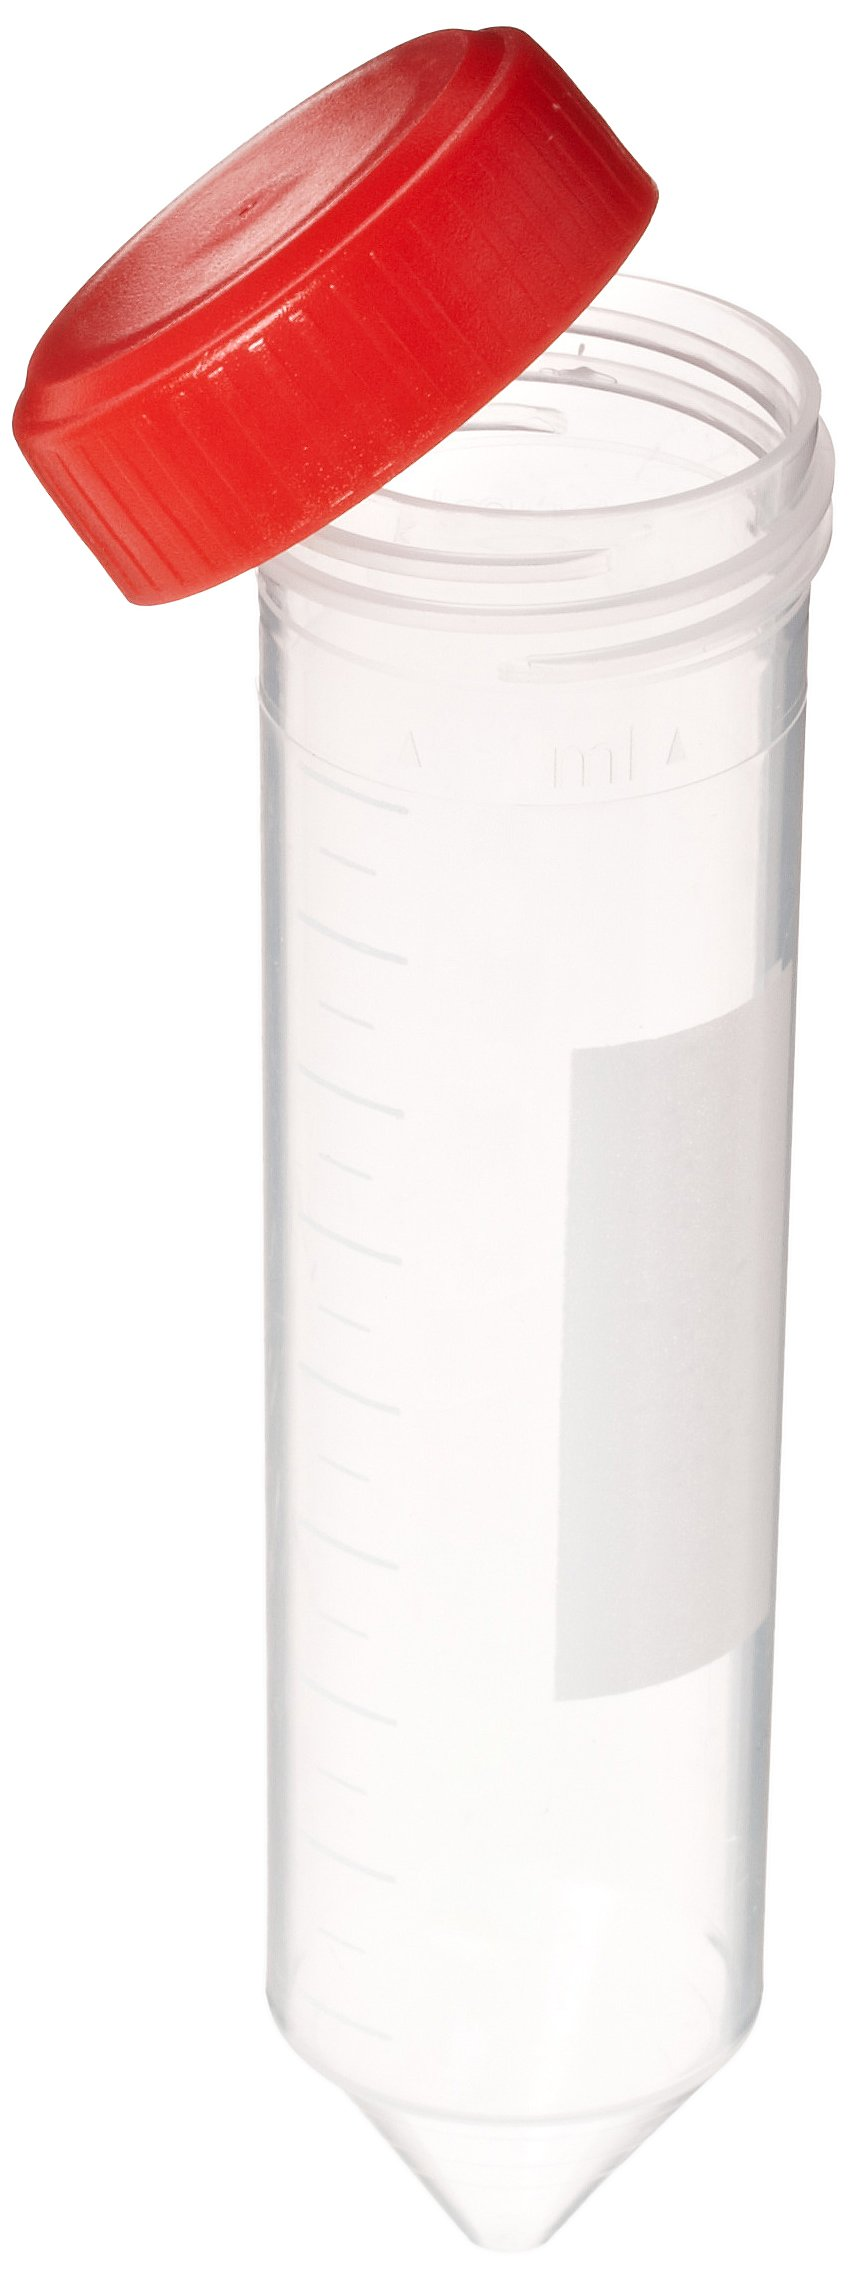 Globe Scientific 6241 Polypropylene Centrifuge Tube with Attached Red Screw Cap, 50mL Capacity, Sterile, Bag Pack (Case of 500)